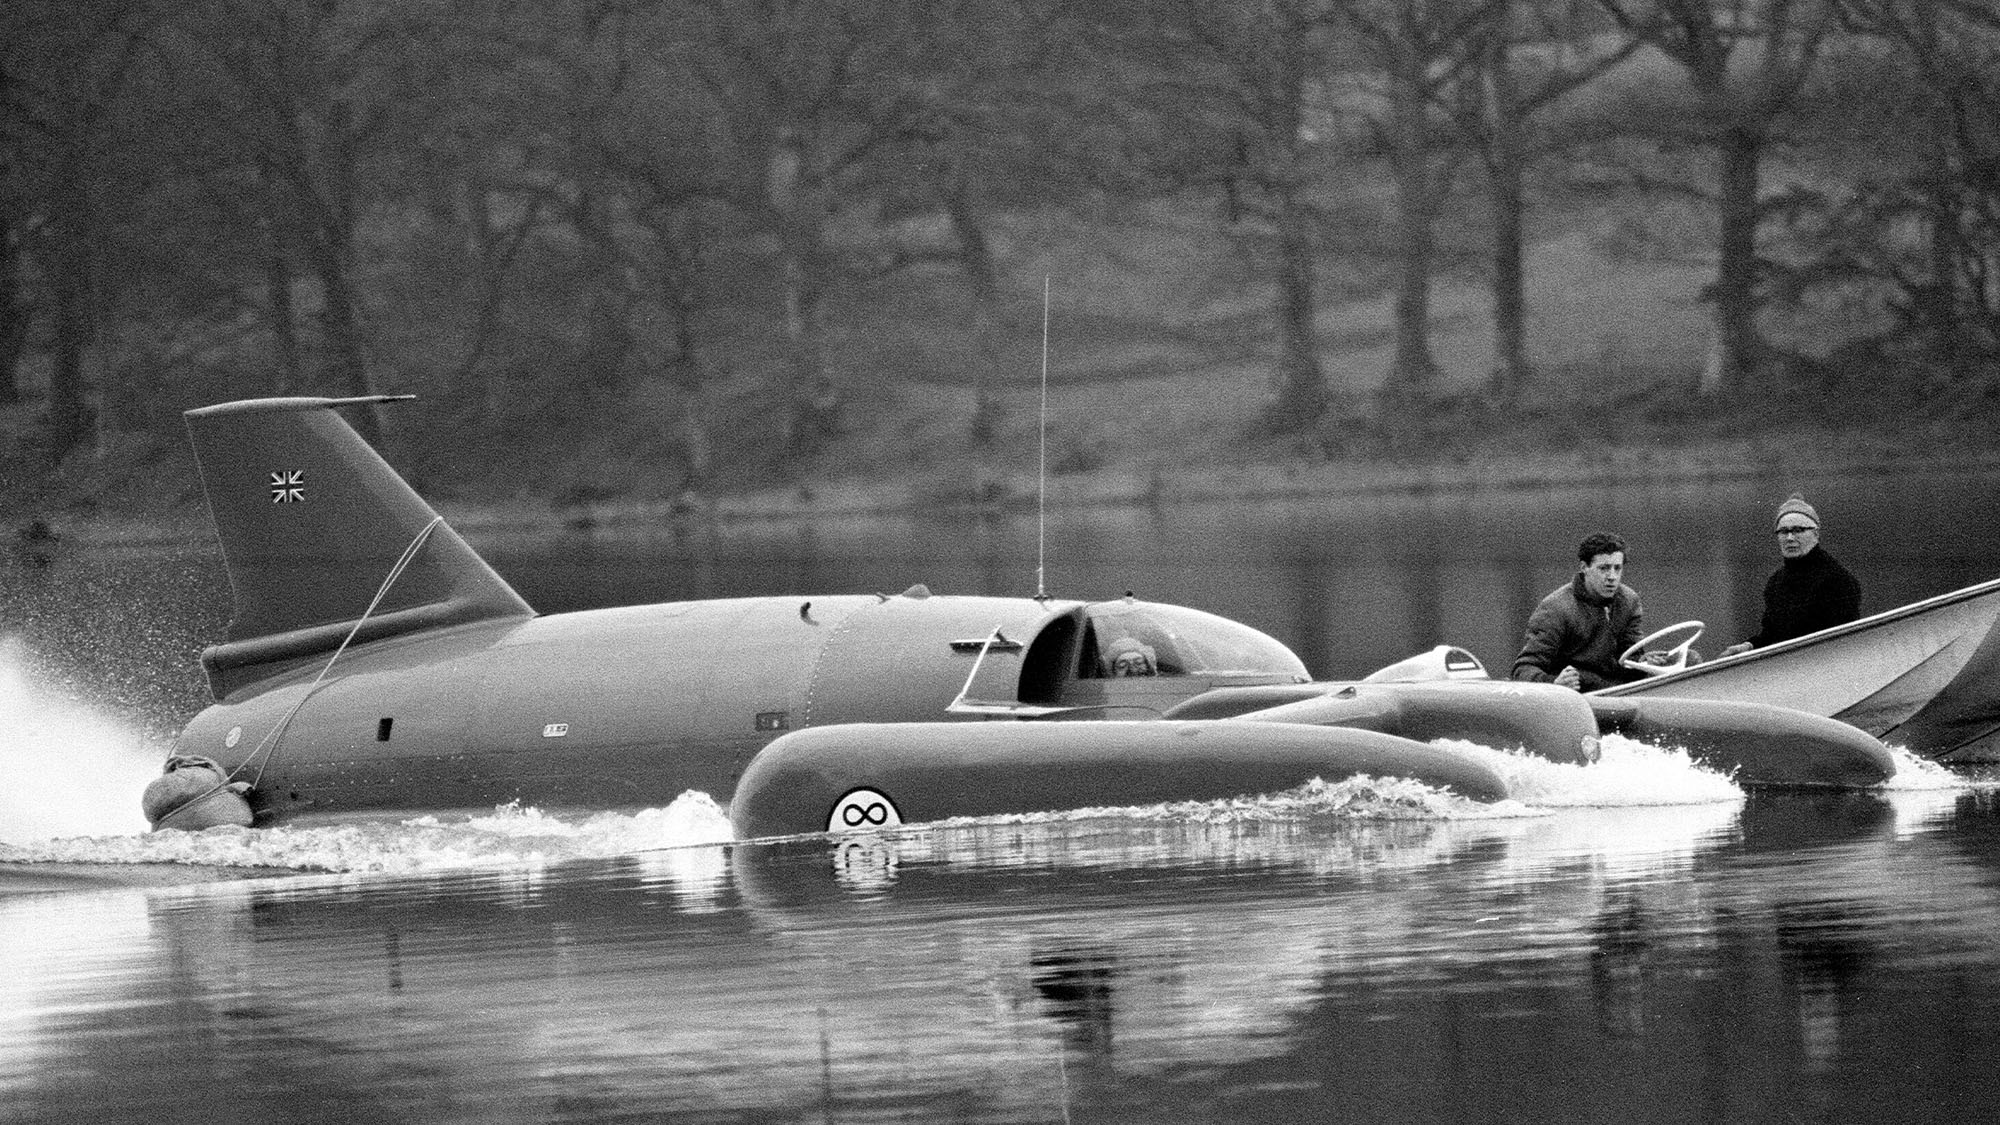 4th November 1966. Campbell was killed instantly on 4th January 1967 whilst attempting to break his own water-speed record of 276mph. His craft 'Bluebird' flipped into the air at around 300mph.